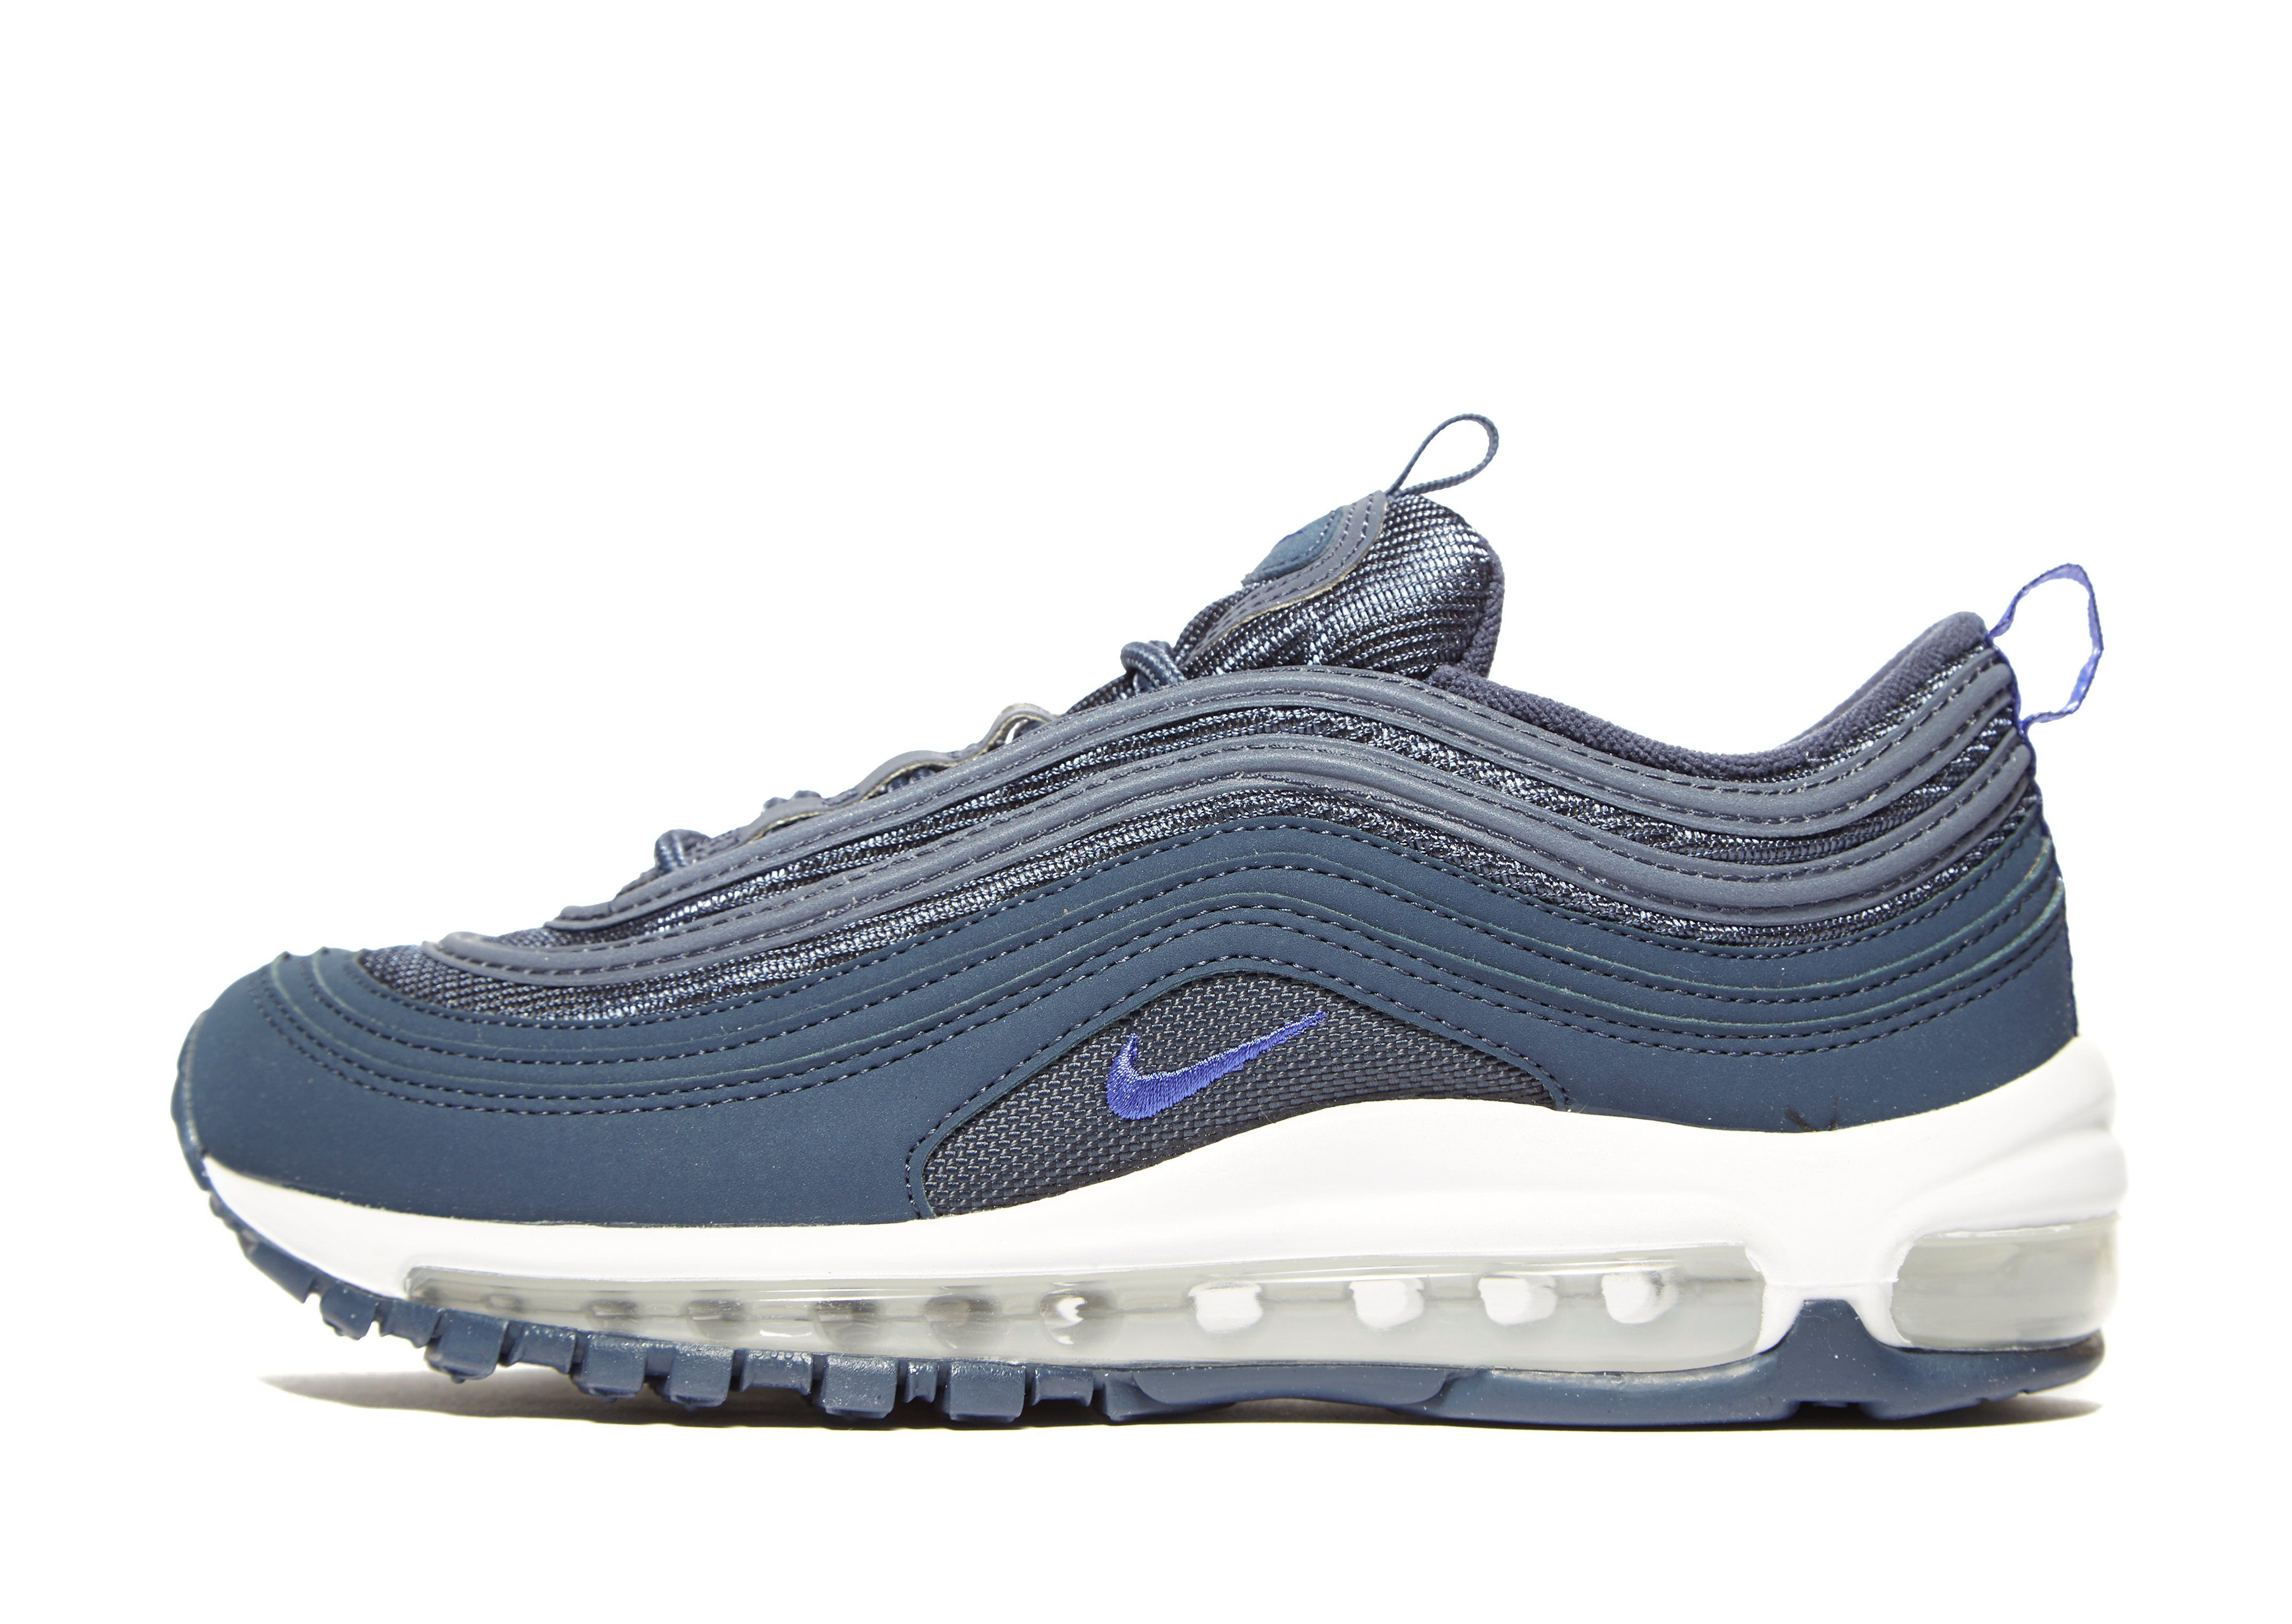 Air Max 97 Og W chaussures orNike